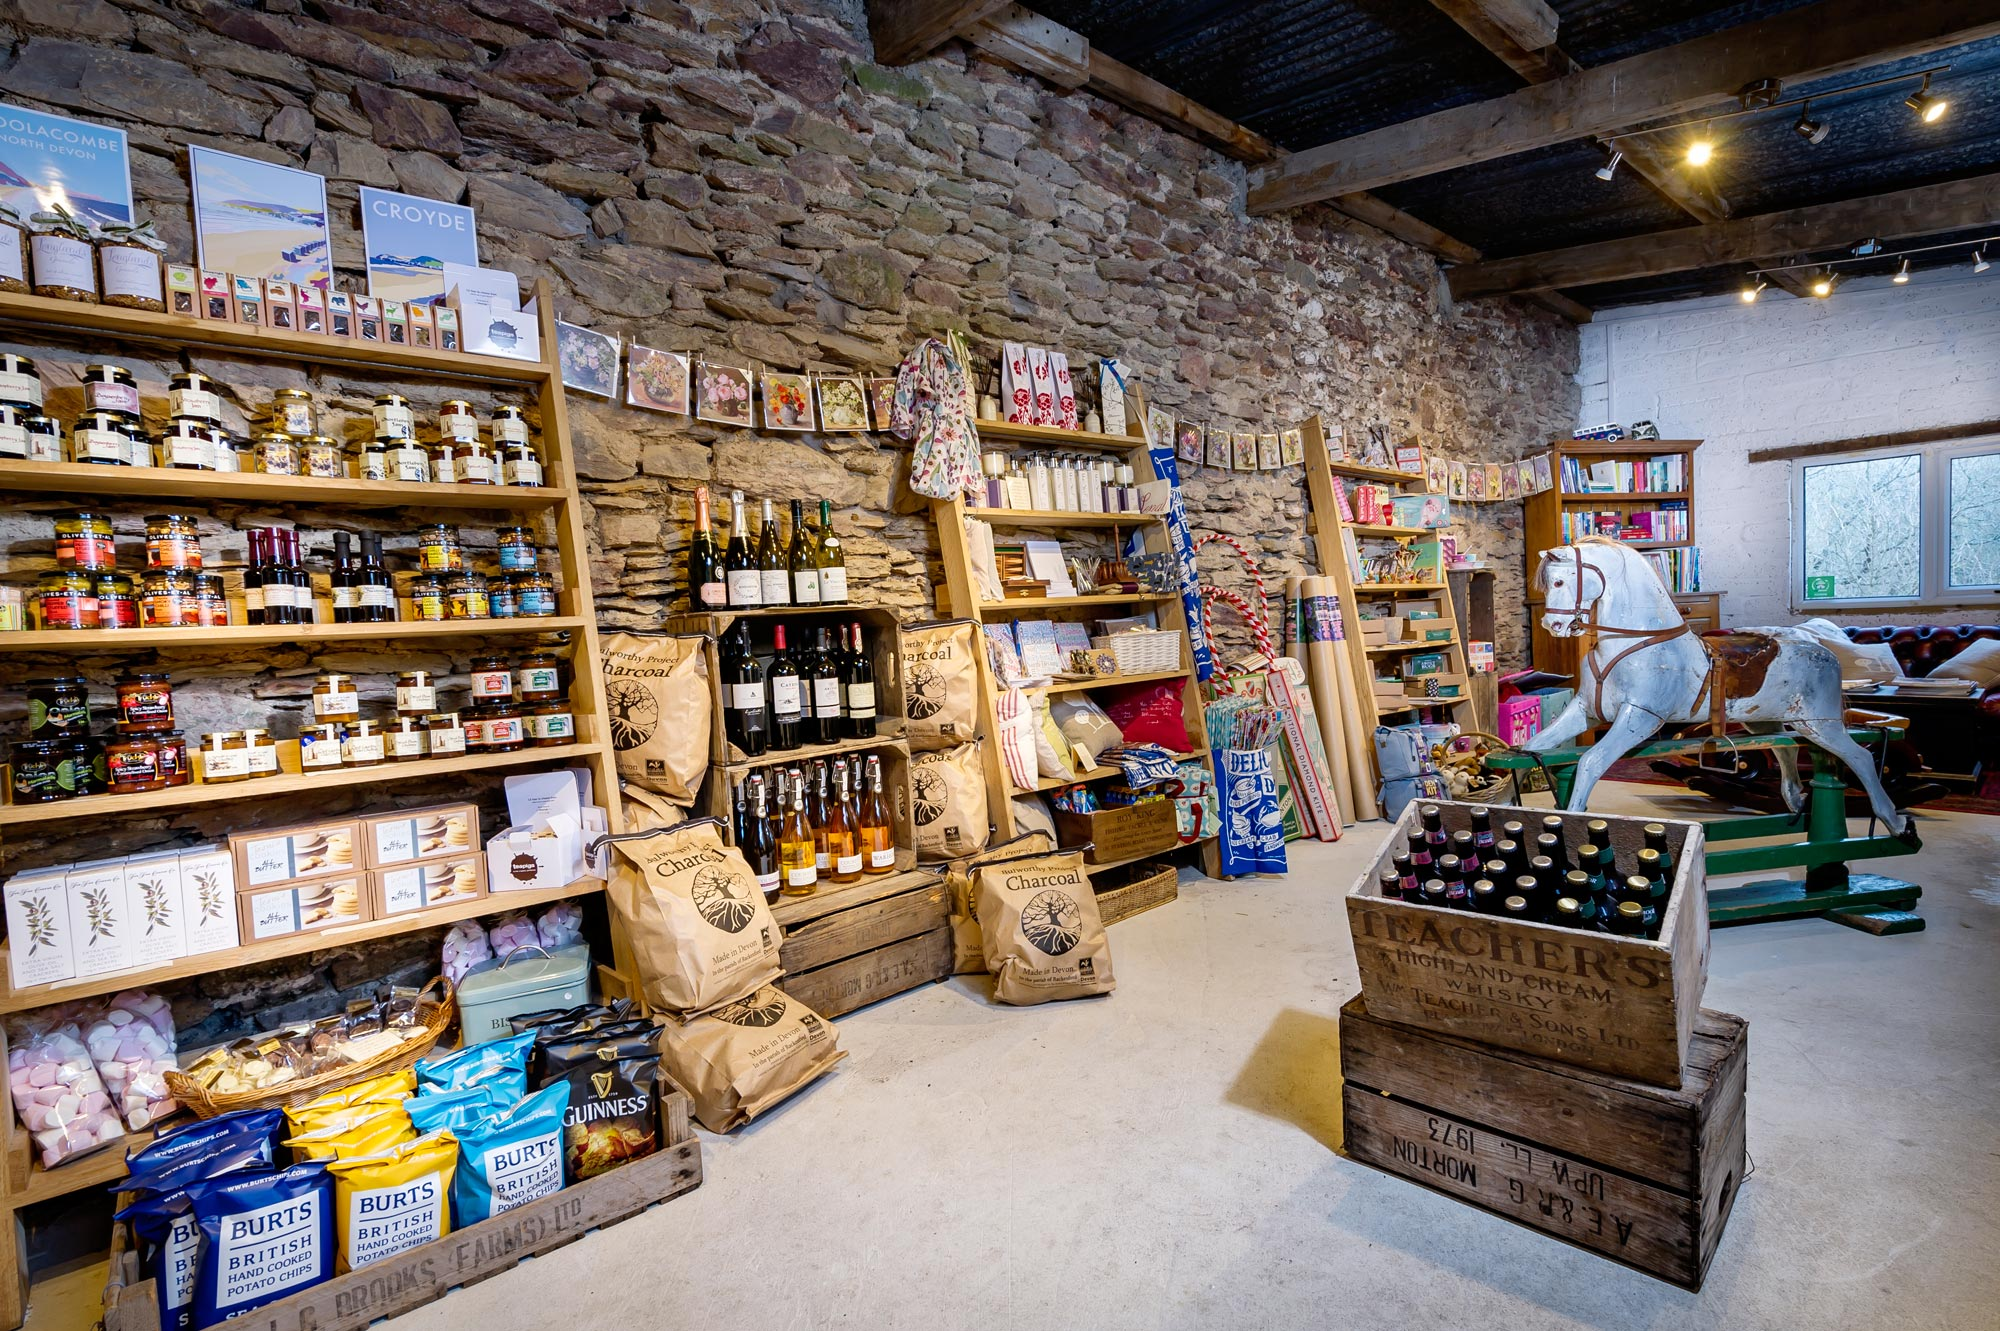 The glamping Shop at Longlands Glamping